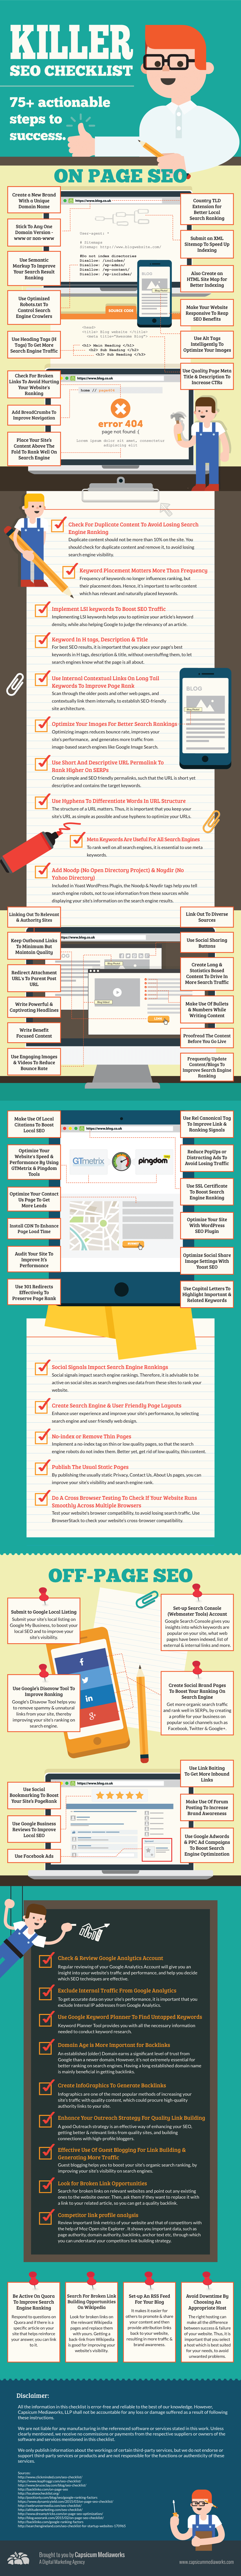 SEO Guide: 75+ Tactics To Optimize Your Website [infographic] Looking for the ultimate SEO guide? This infographic offers 75+ tactics you can begin implementing today! Make it simple on yourself - save this easy guide!Looking for the ultimate SEO guide? This infographic offers 75+ tactics you can begin implementing today! Make it simple on yourself -...